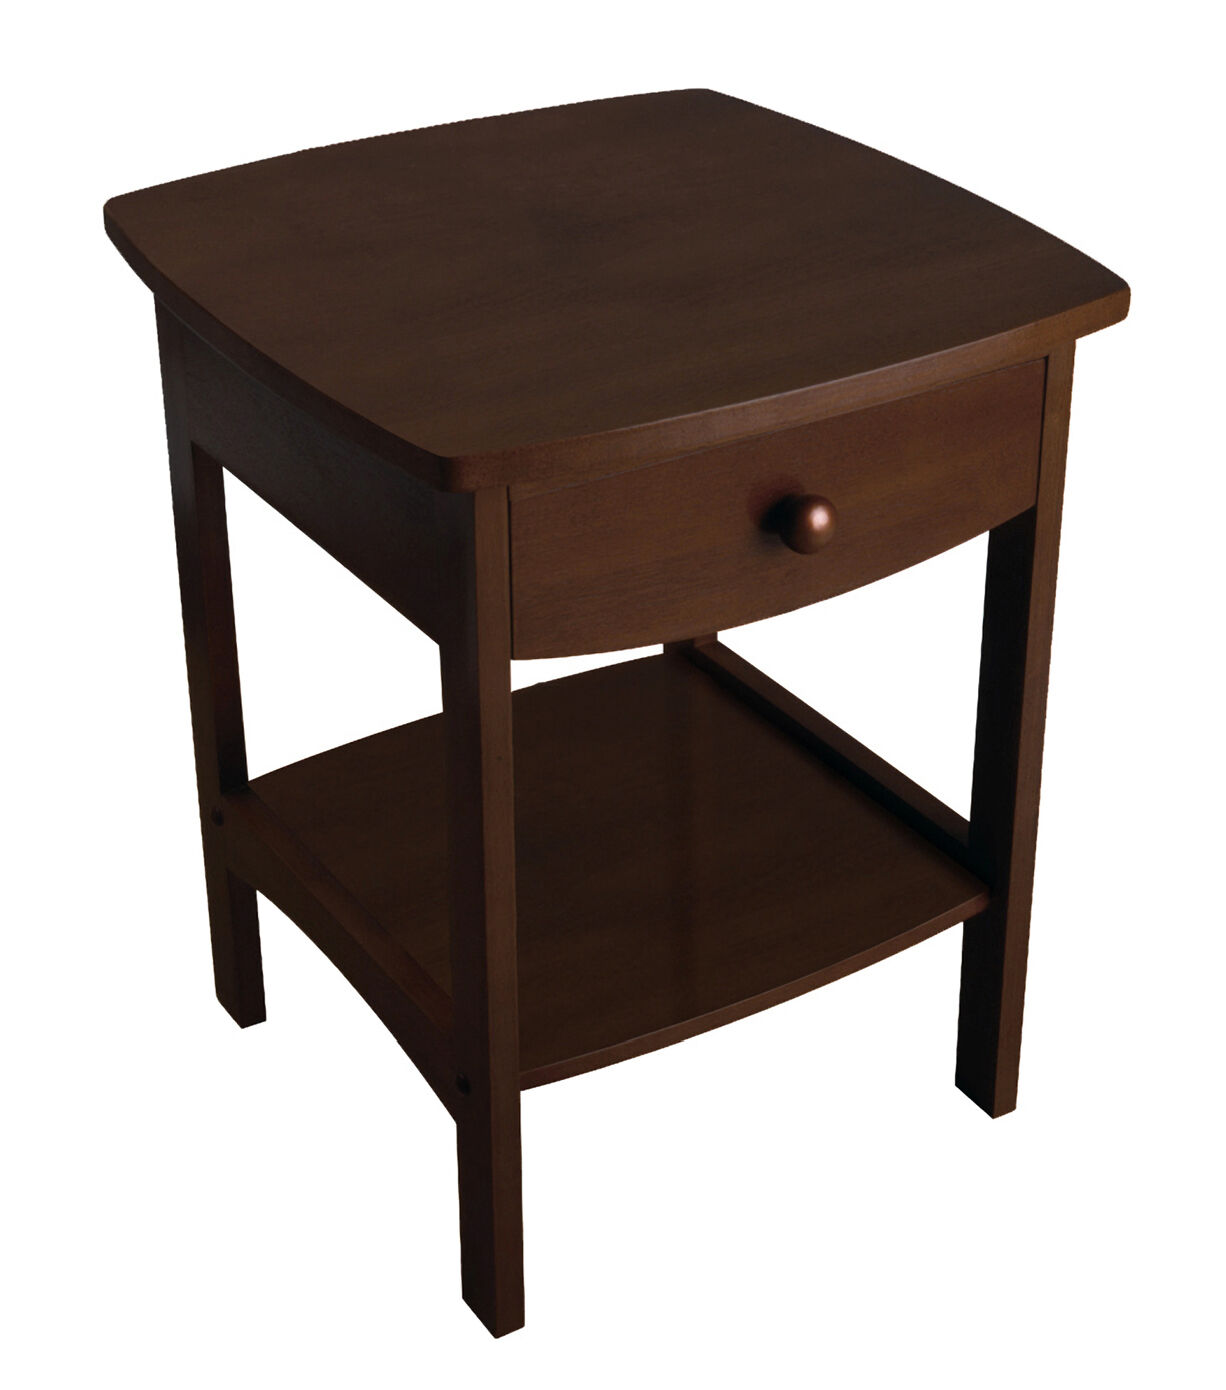 Walnut brown curved end table night stand w one drawer 22 for 10 inch wide side table